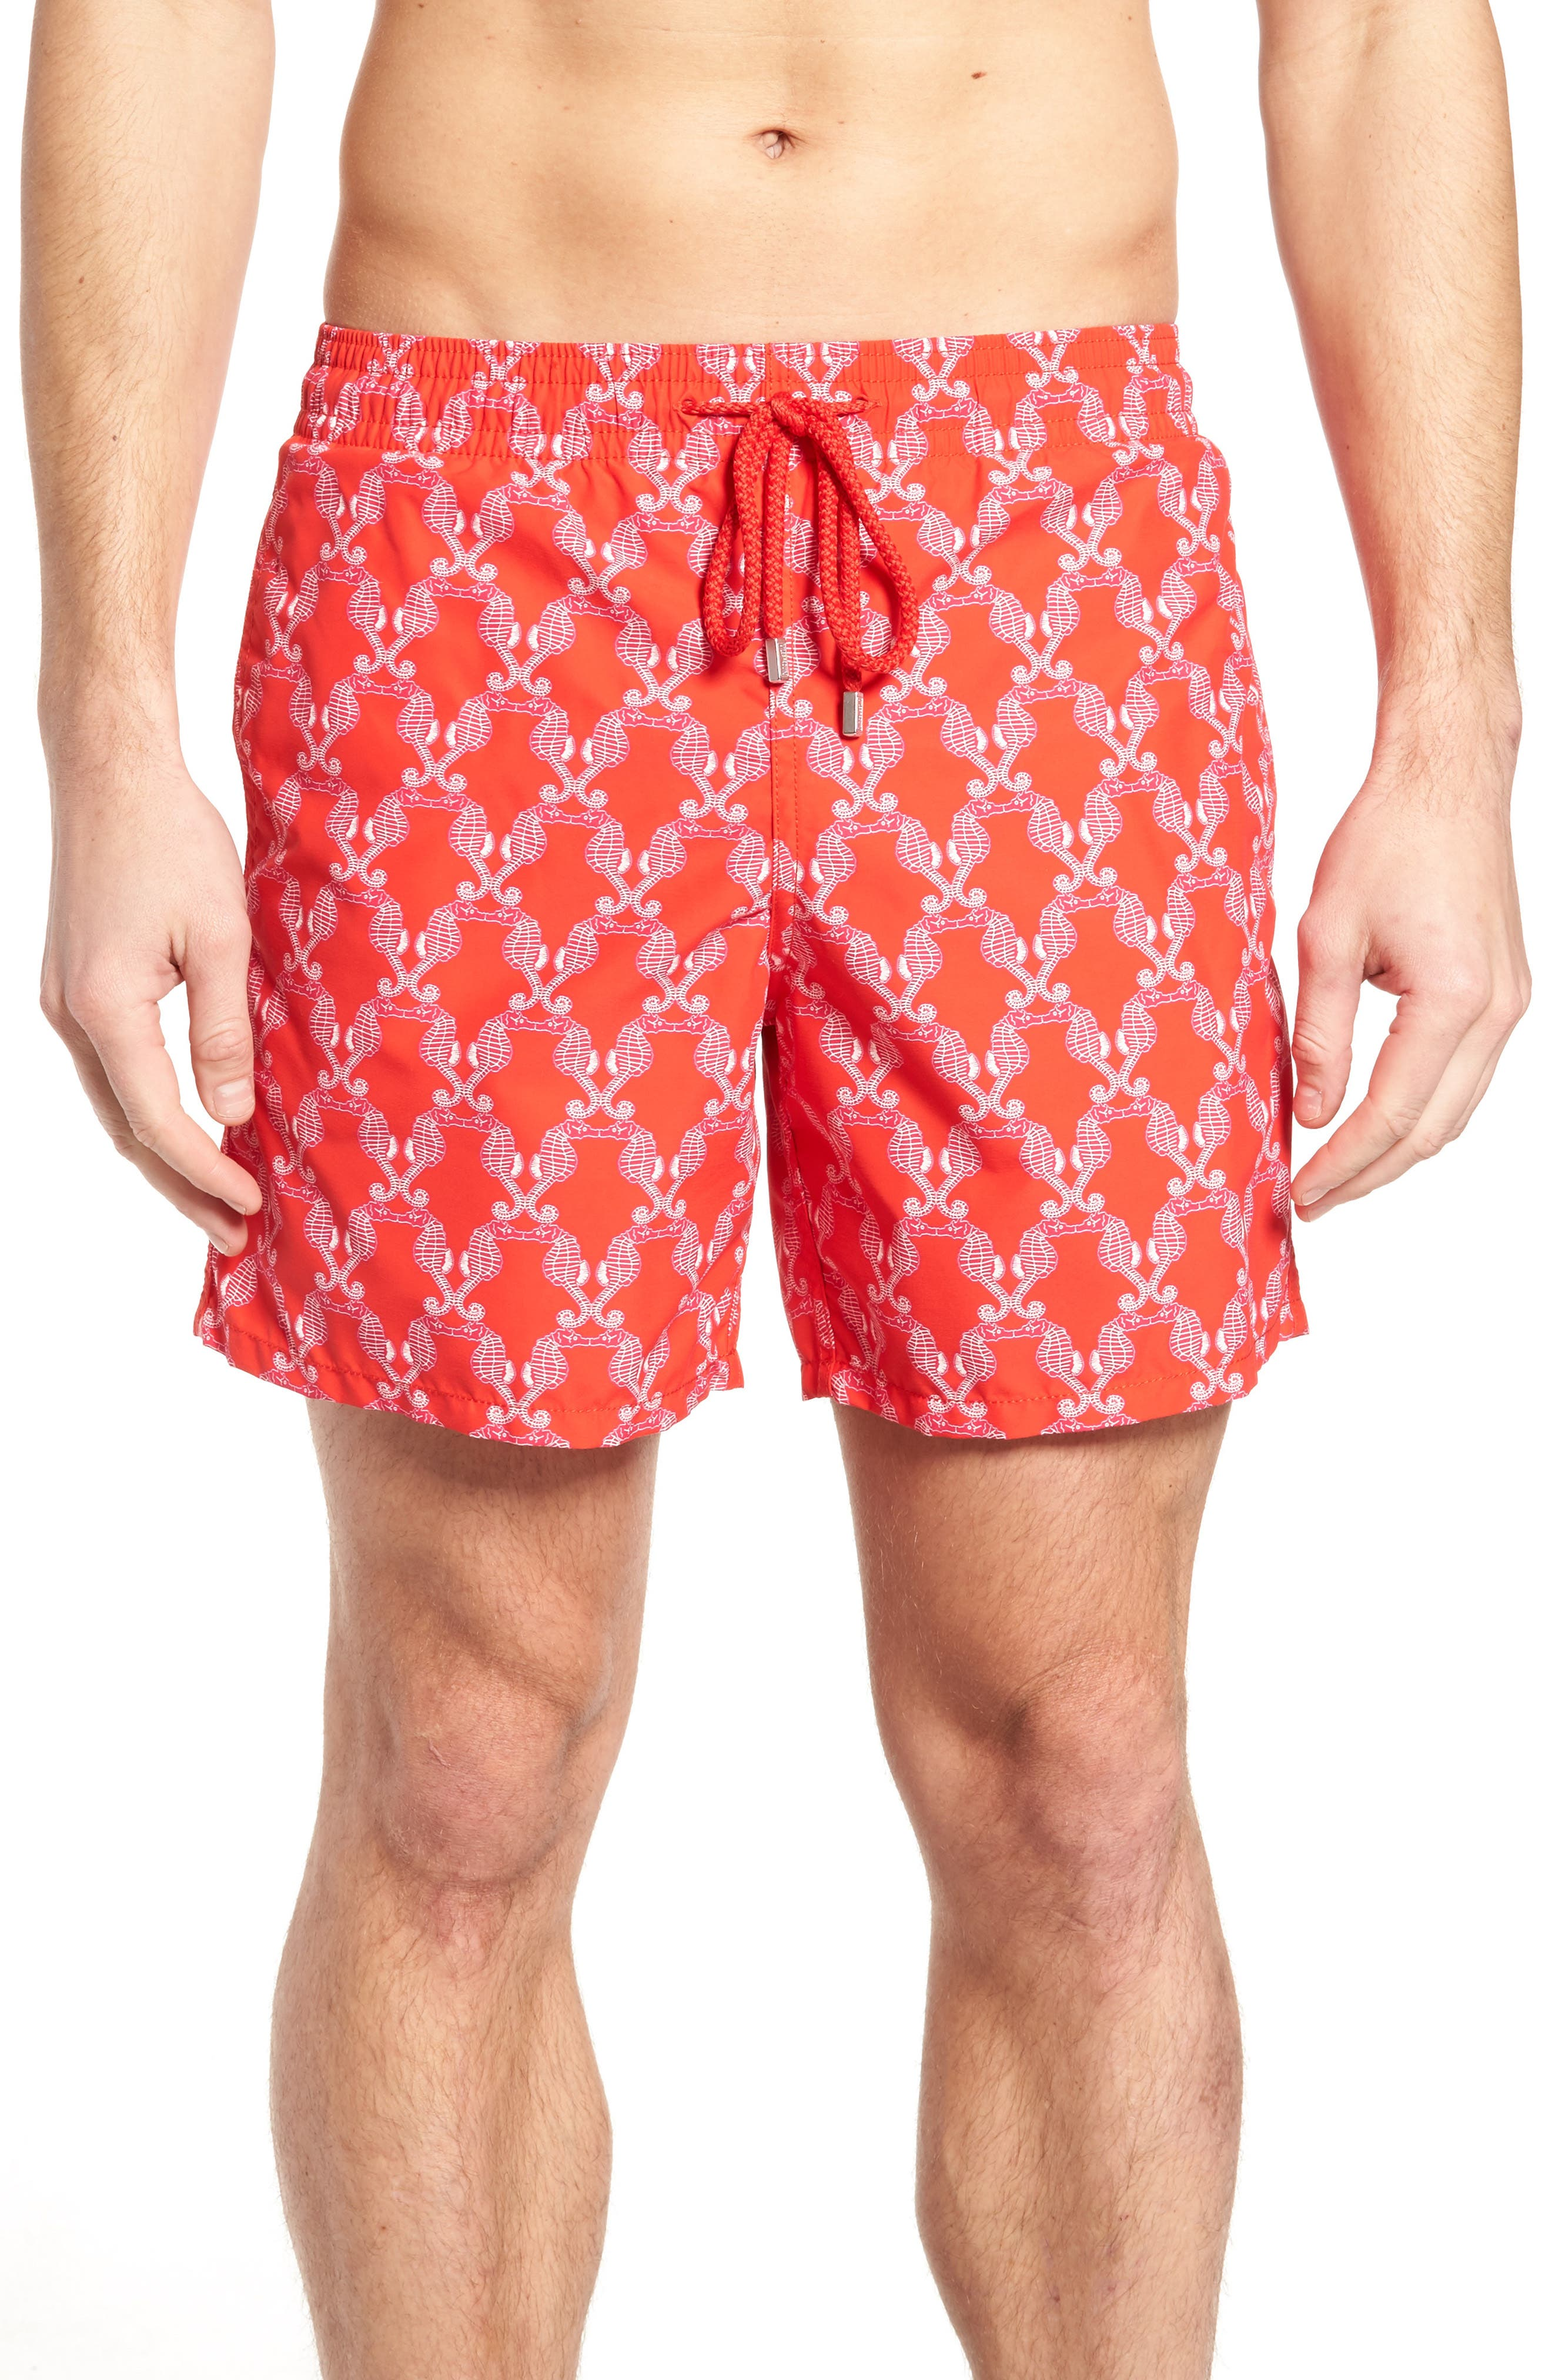 Seahorses Swim Trunks,                         Main,                         color, Poppy Red